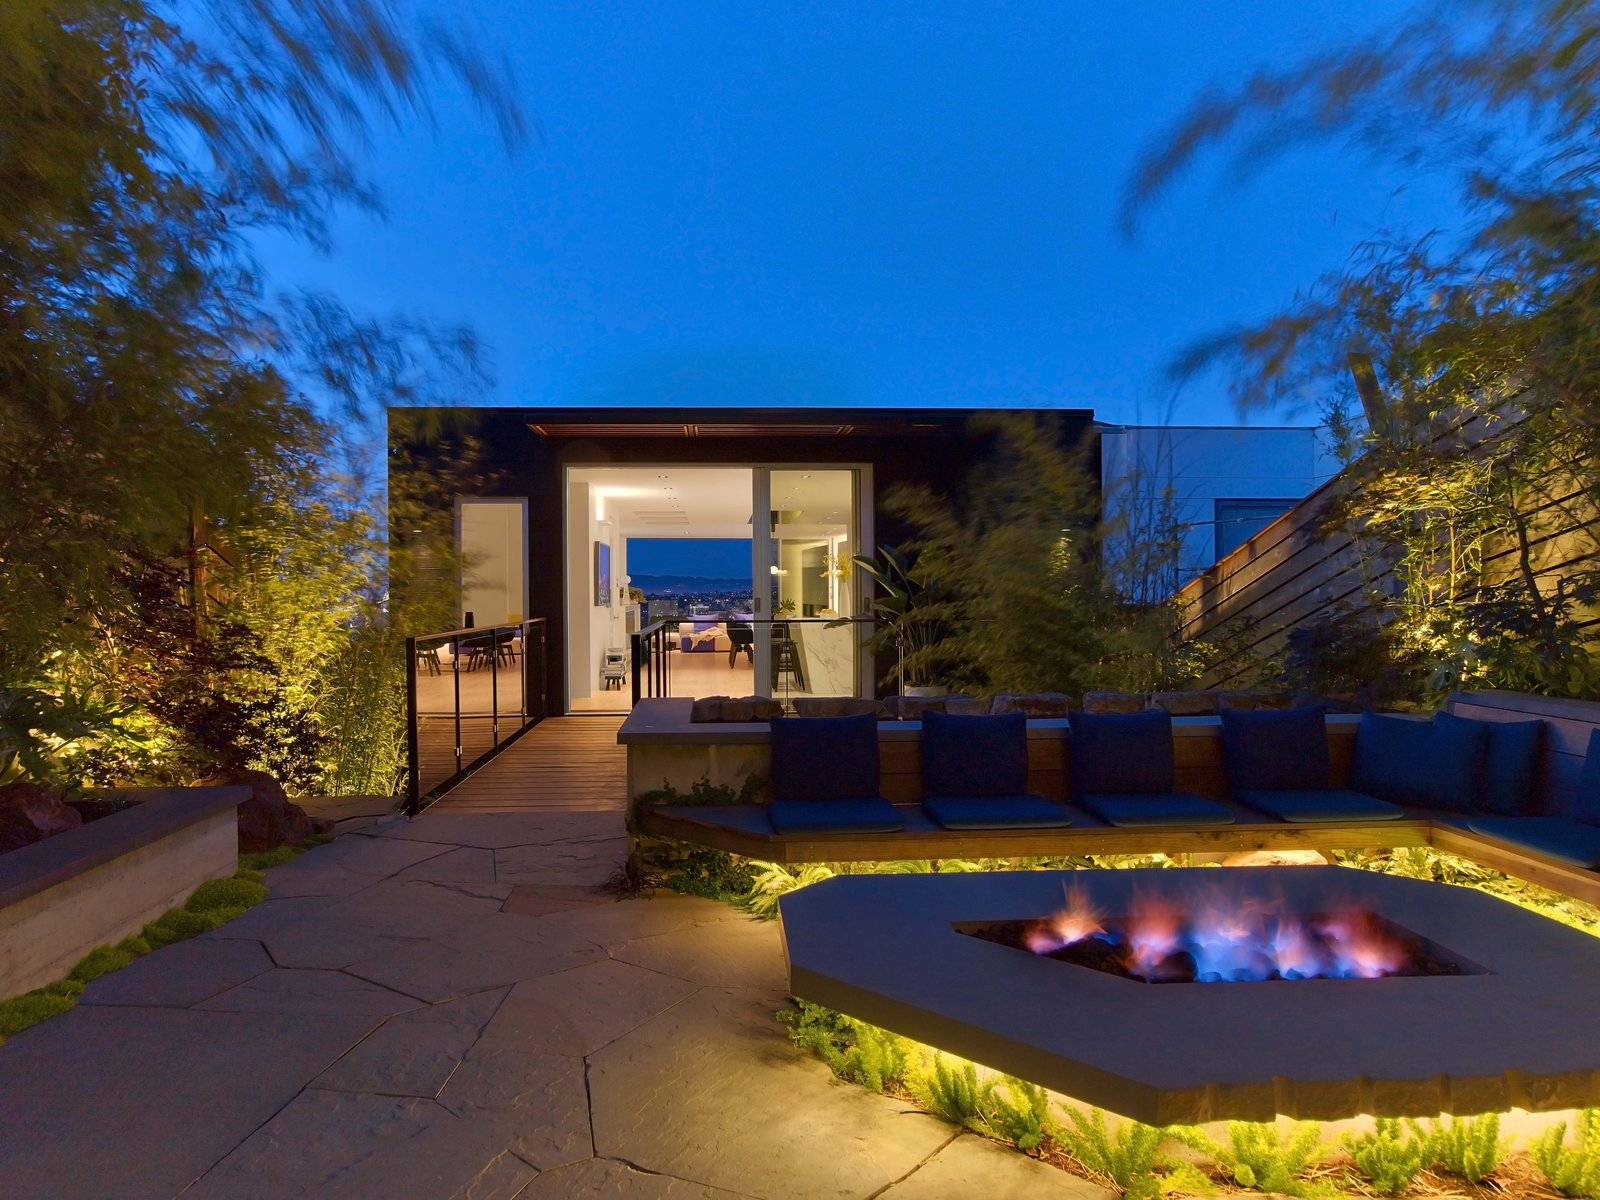 Outdoor, Back Yard, Trees, Shrubs, Stone Patio, Porch, Deck, Wood Fences, Wall, Landscape Lighting, and Horizontal Fences, Wall  Glen Park Residence by CCS ARCHITECTURE